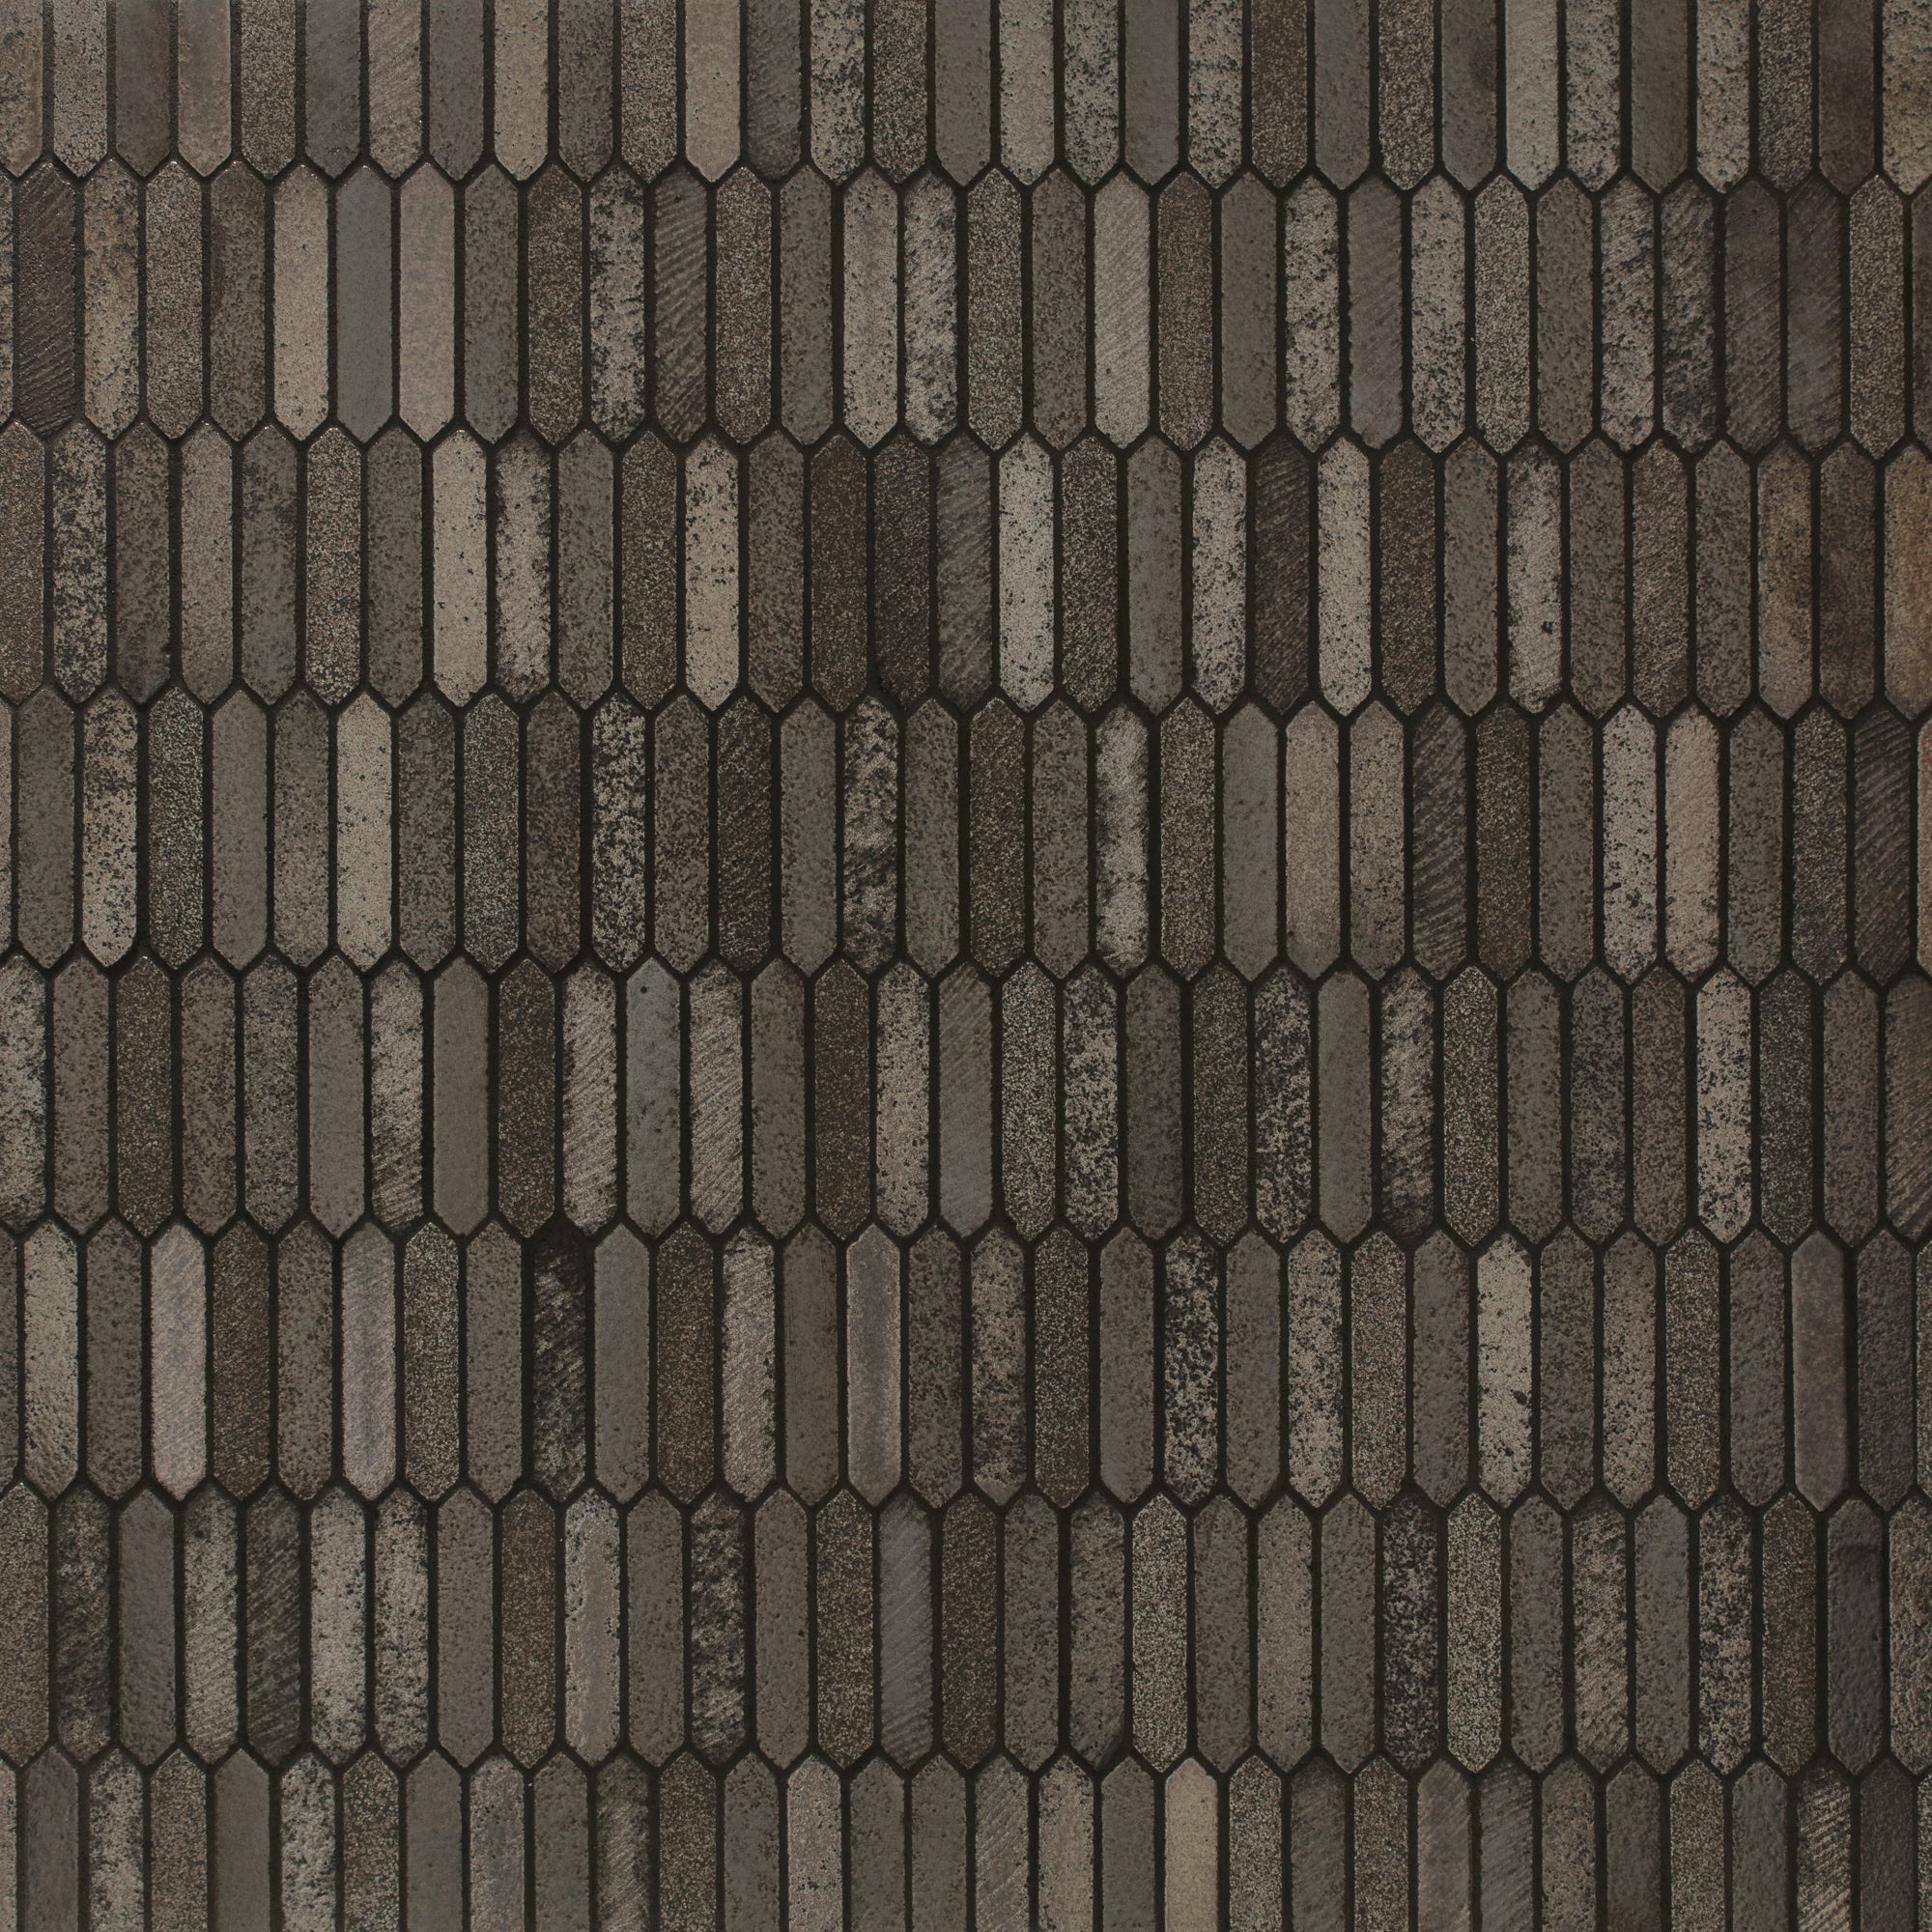 Mosaic Volcano Bronze Blend Basalt Swatch Card  Crackle Samples Picket product photo